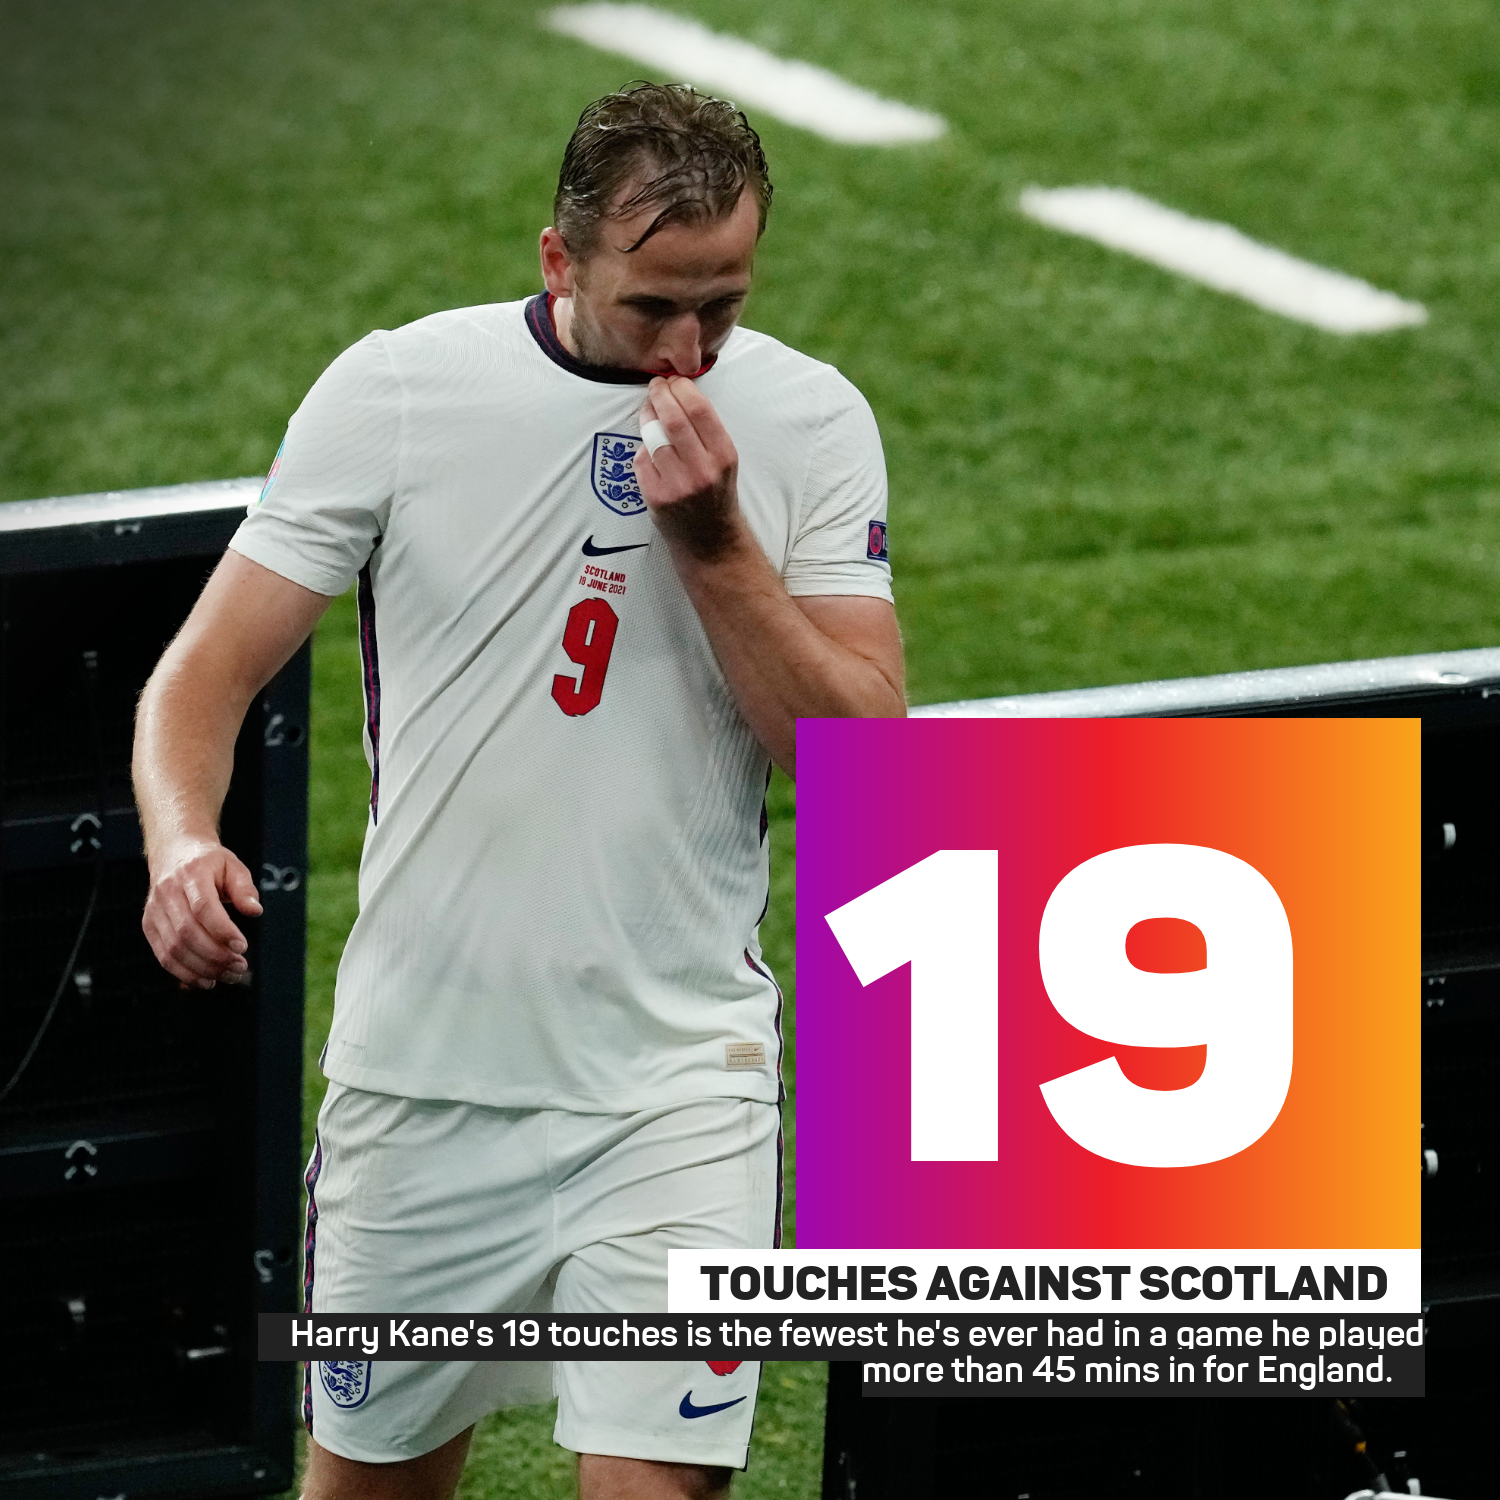 Kane had just 19 touches against Scotland